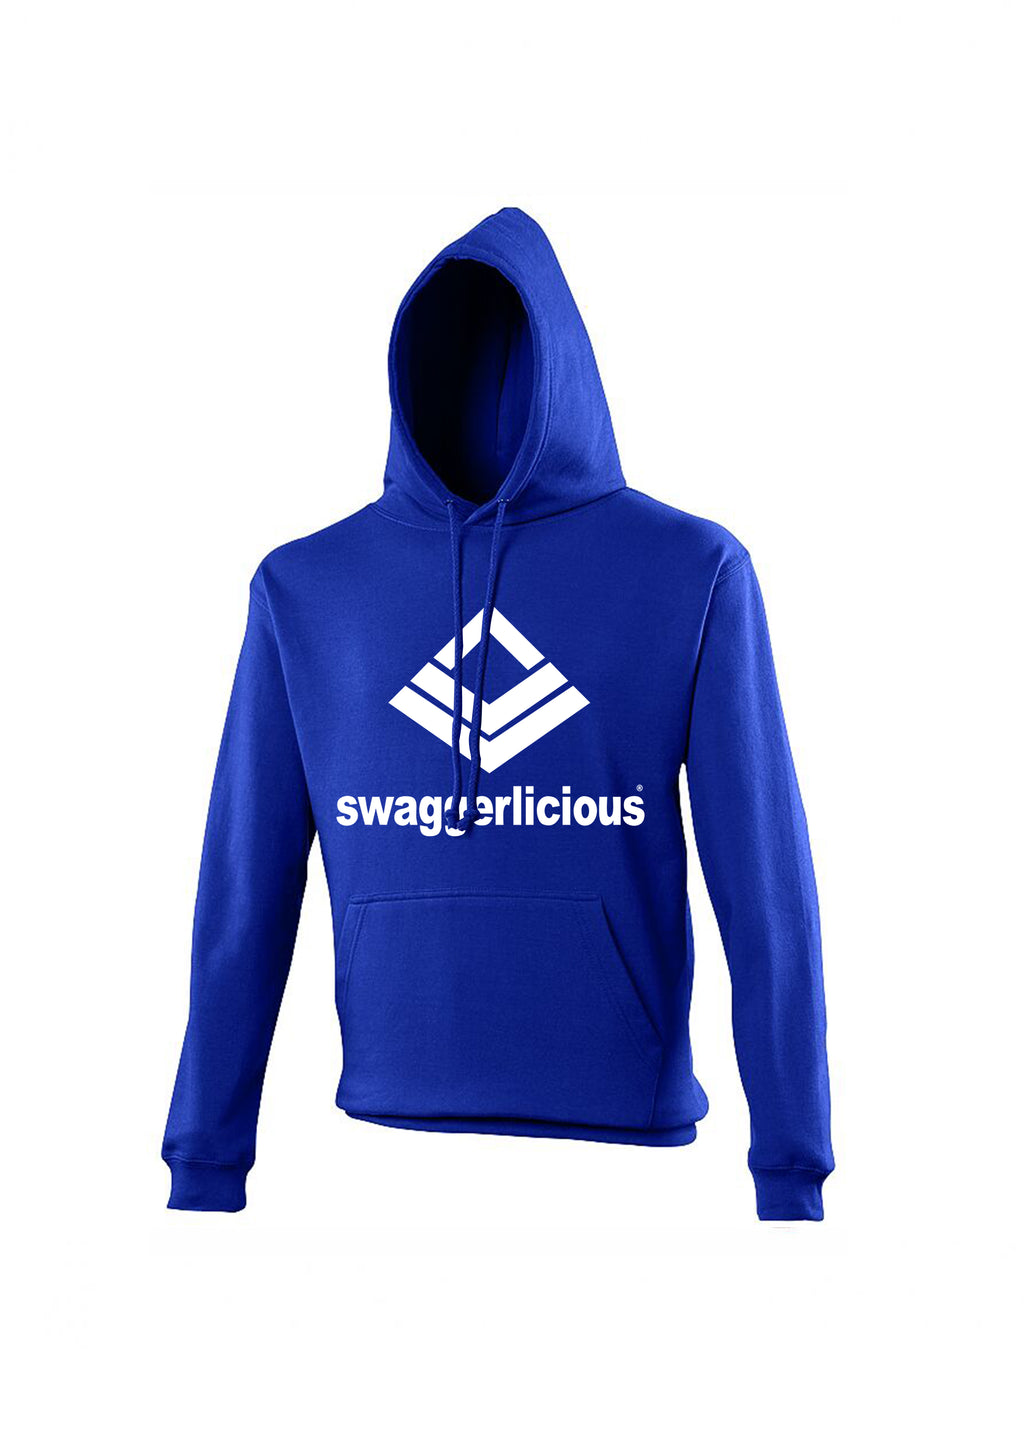 Swaggerlicious Classic Sports Blue Hoodie - swaggerlicious-clothing.com